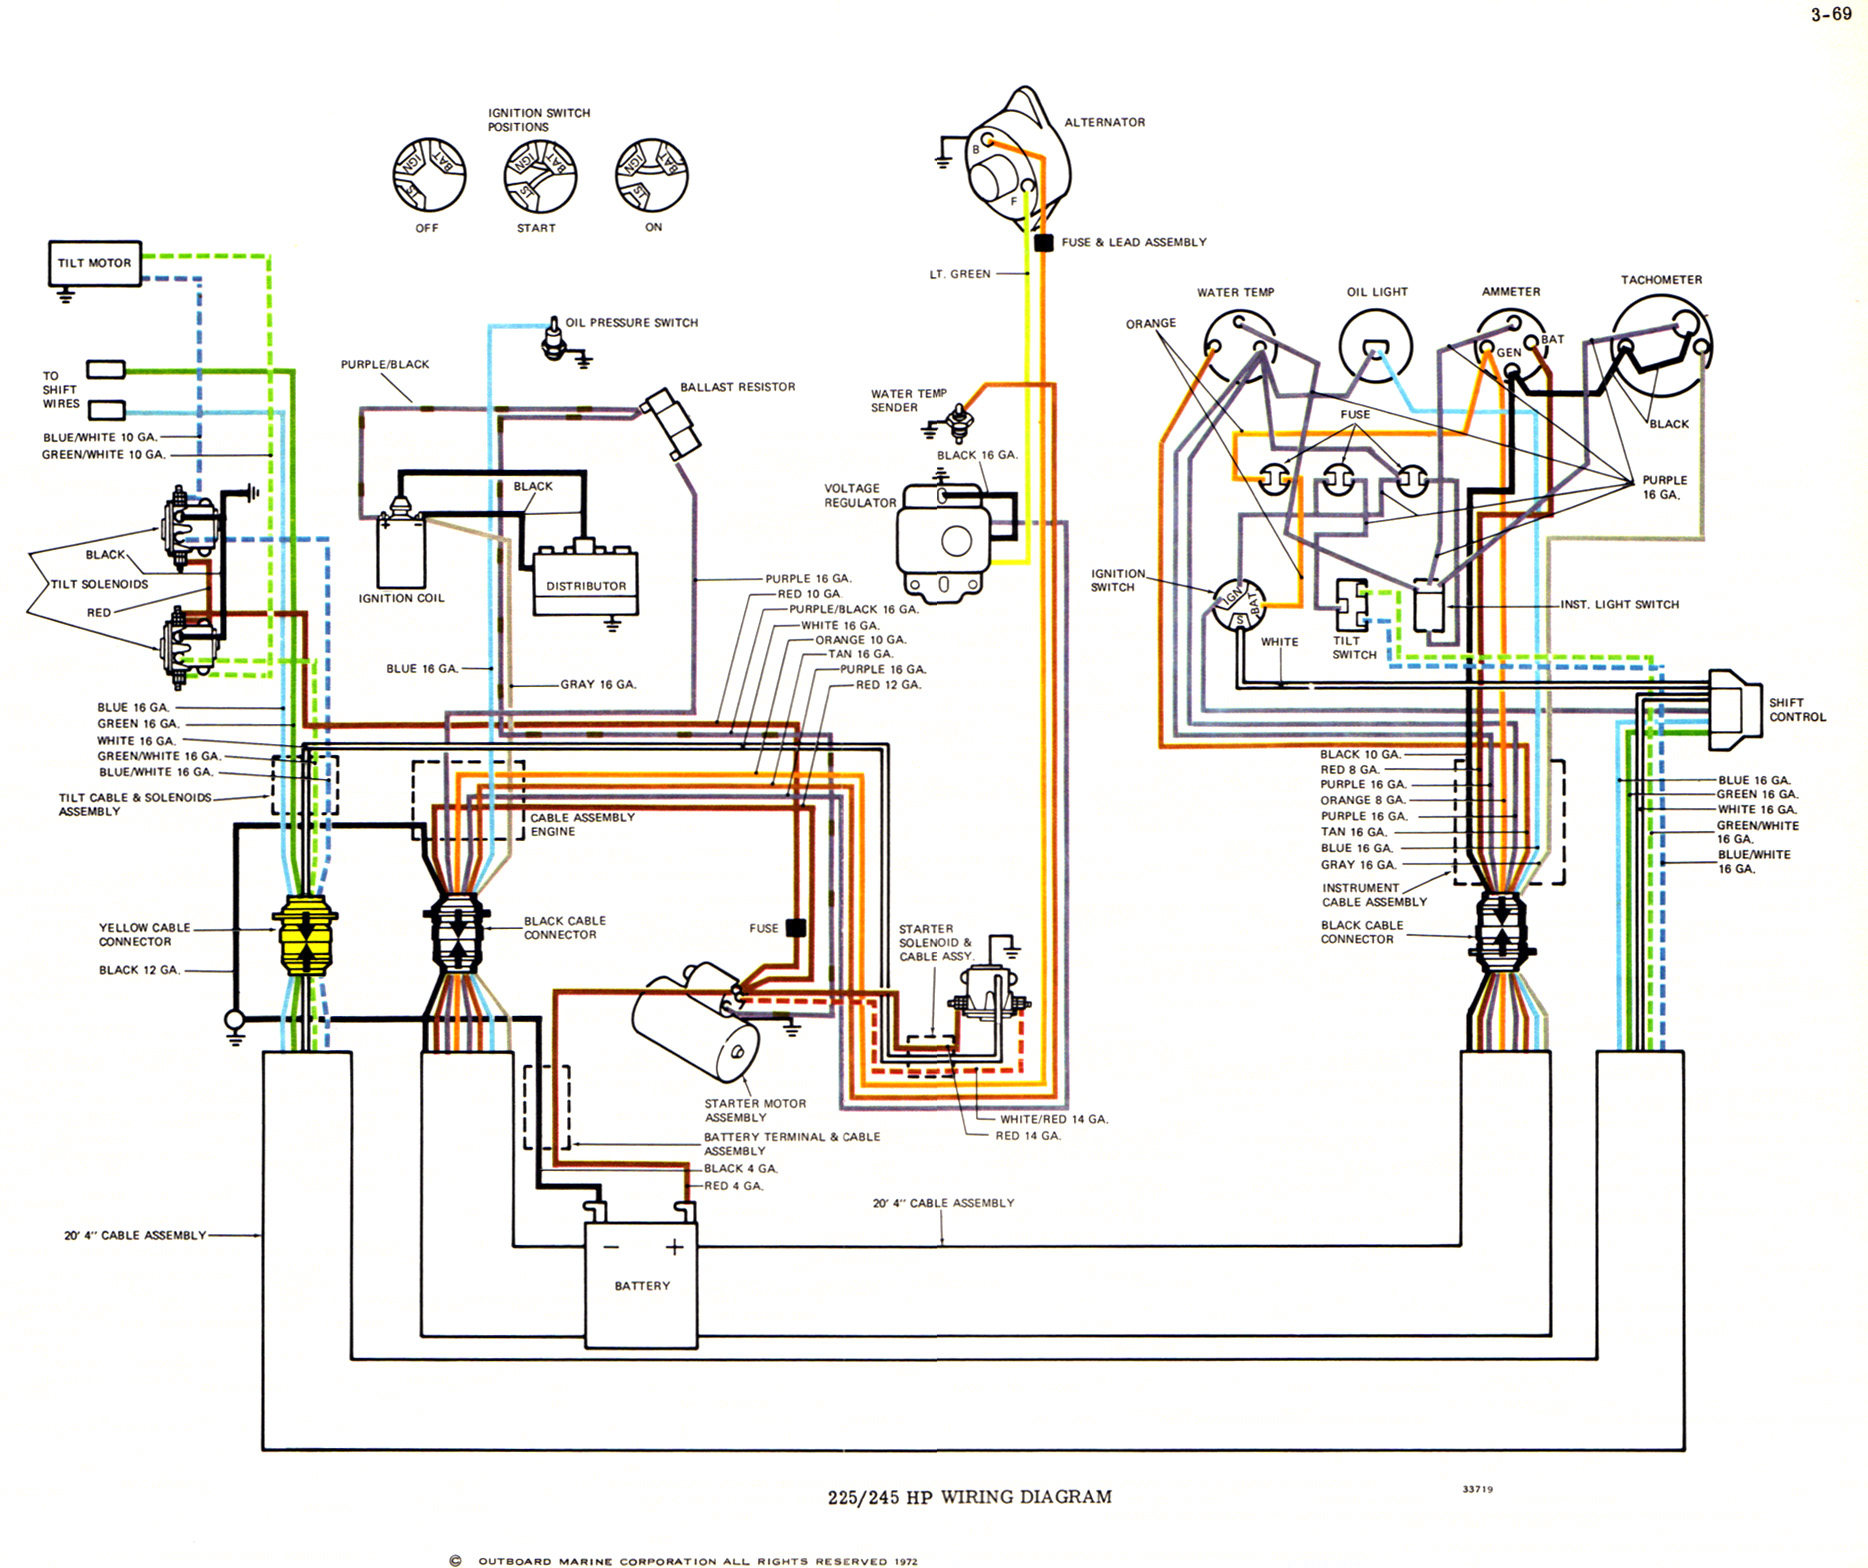 73_OMC_V8_all_big omc wiring diagram basic boat wiring schematic \u2022 wiring diagrams 1969 evinrude 55 hp wiring diagram at soozxer.org